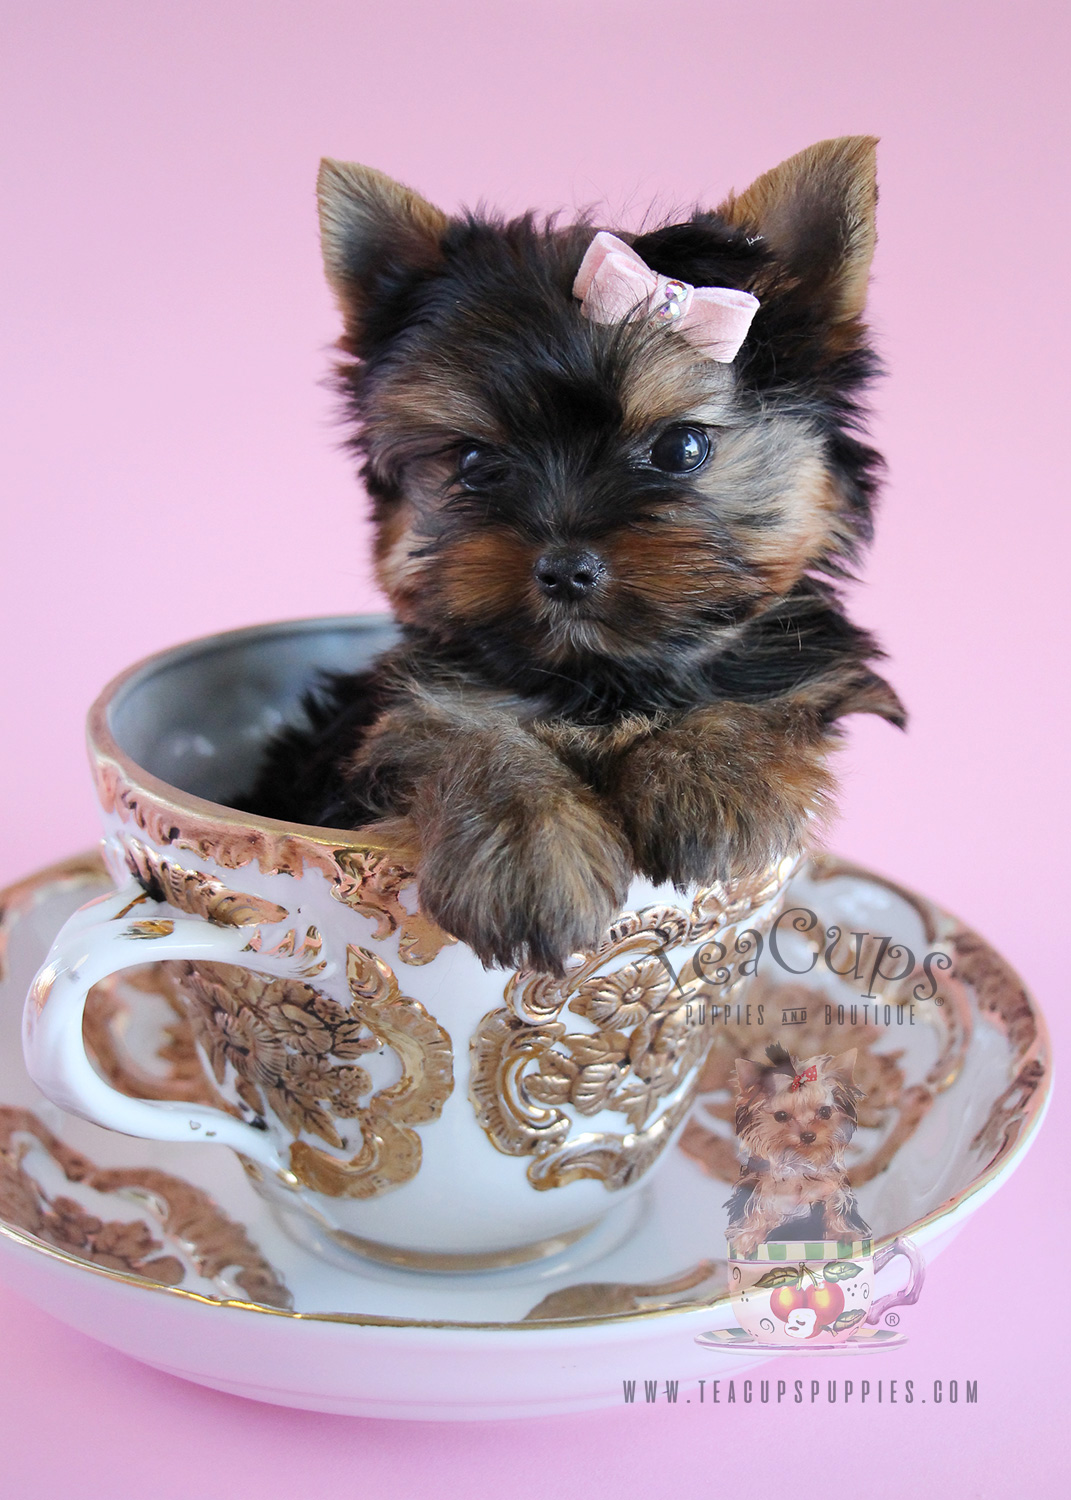 Delightful Little Yorkie Puppies South Florida Teacups